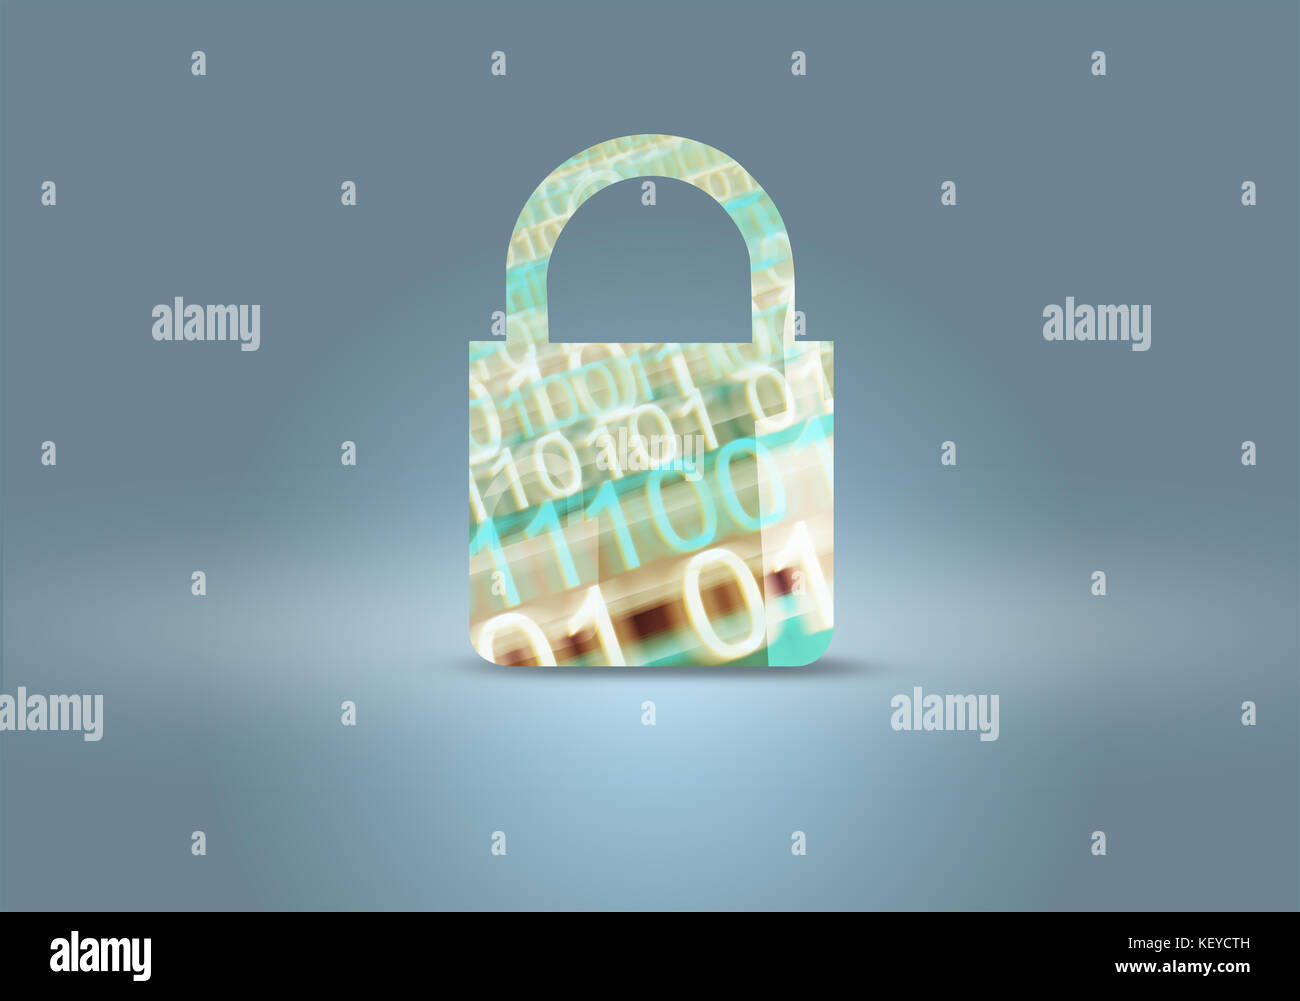 Computer and Digital Data Security Locker Concept. - Stock Image